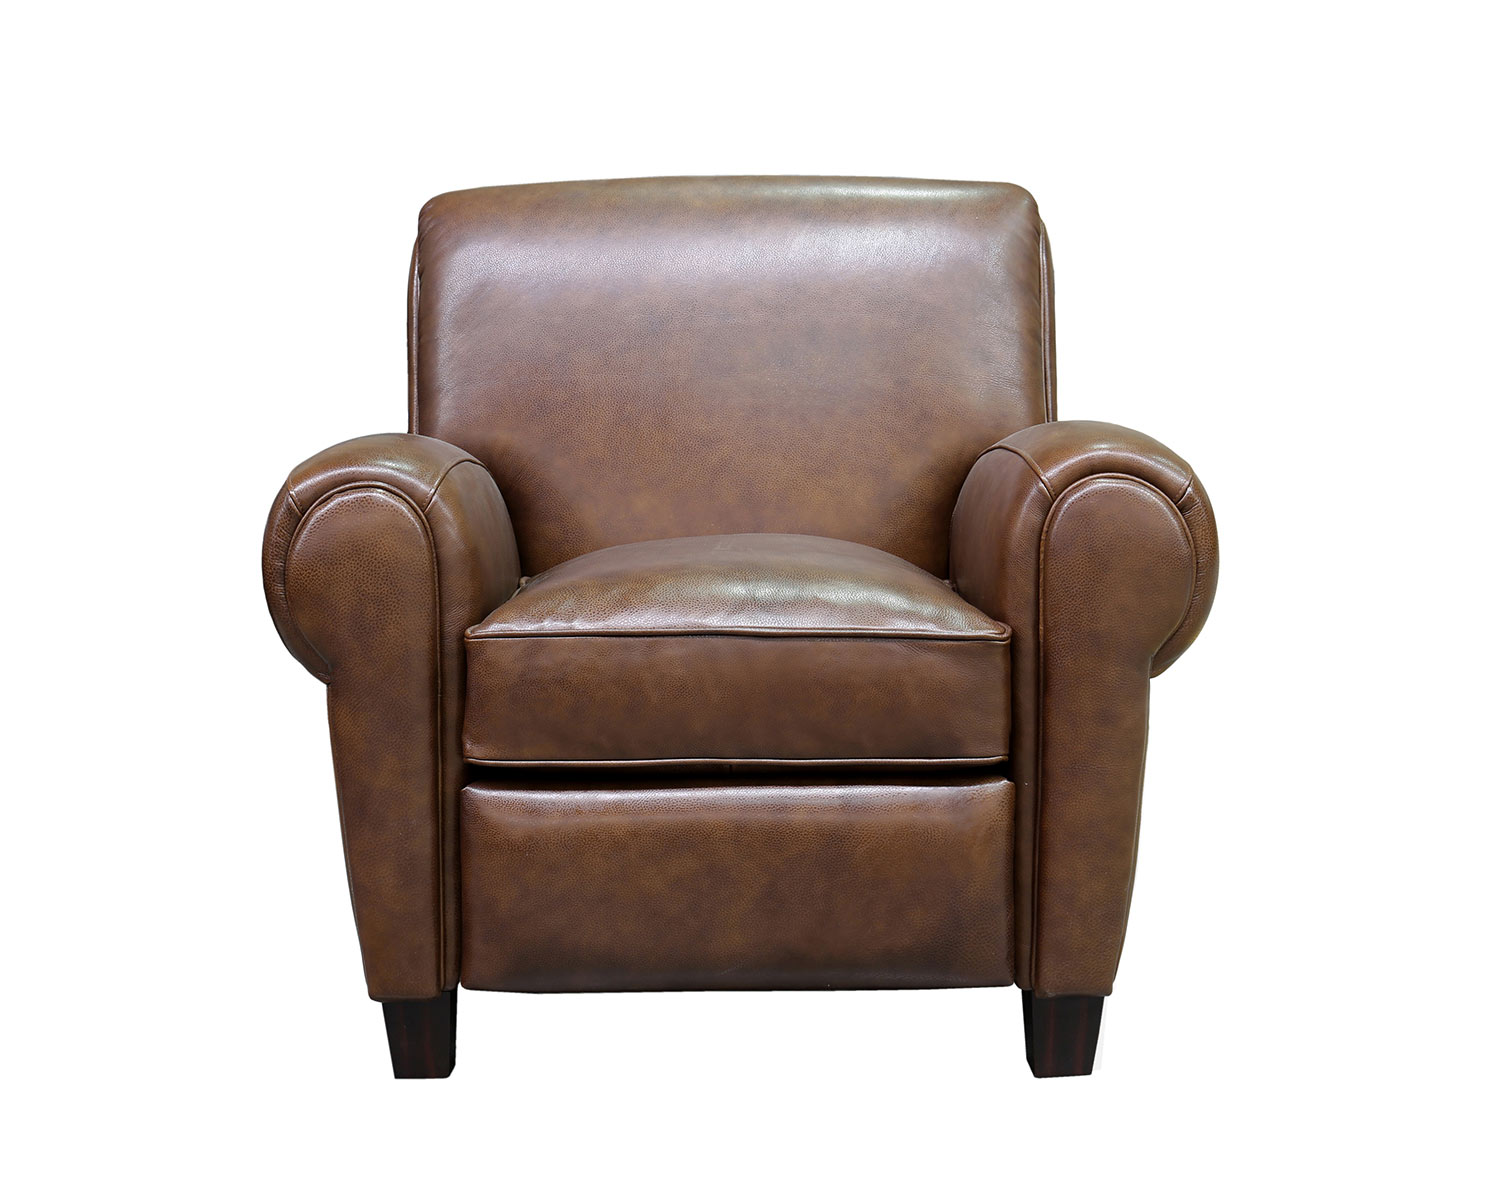 Double Recliner Chair Barcalounger Edwin Recliner Chair Wenlock Double Chocolate All Leather